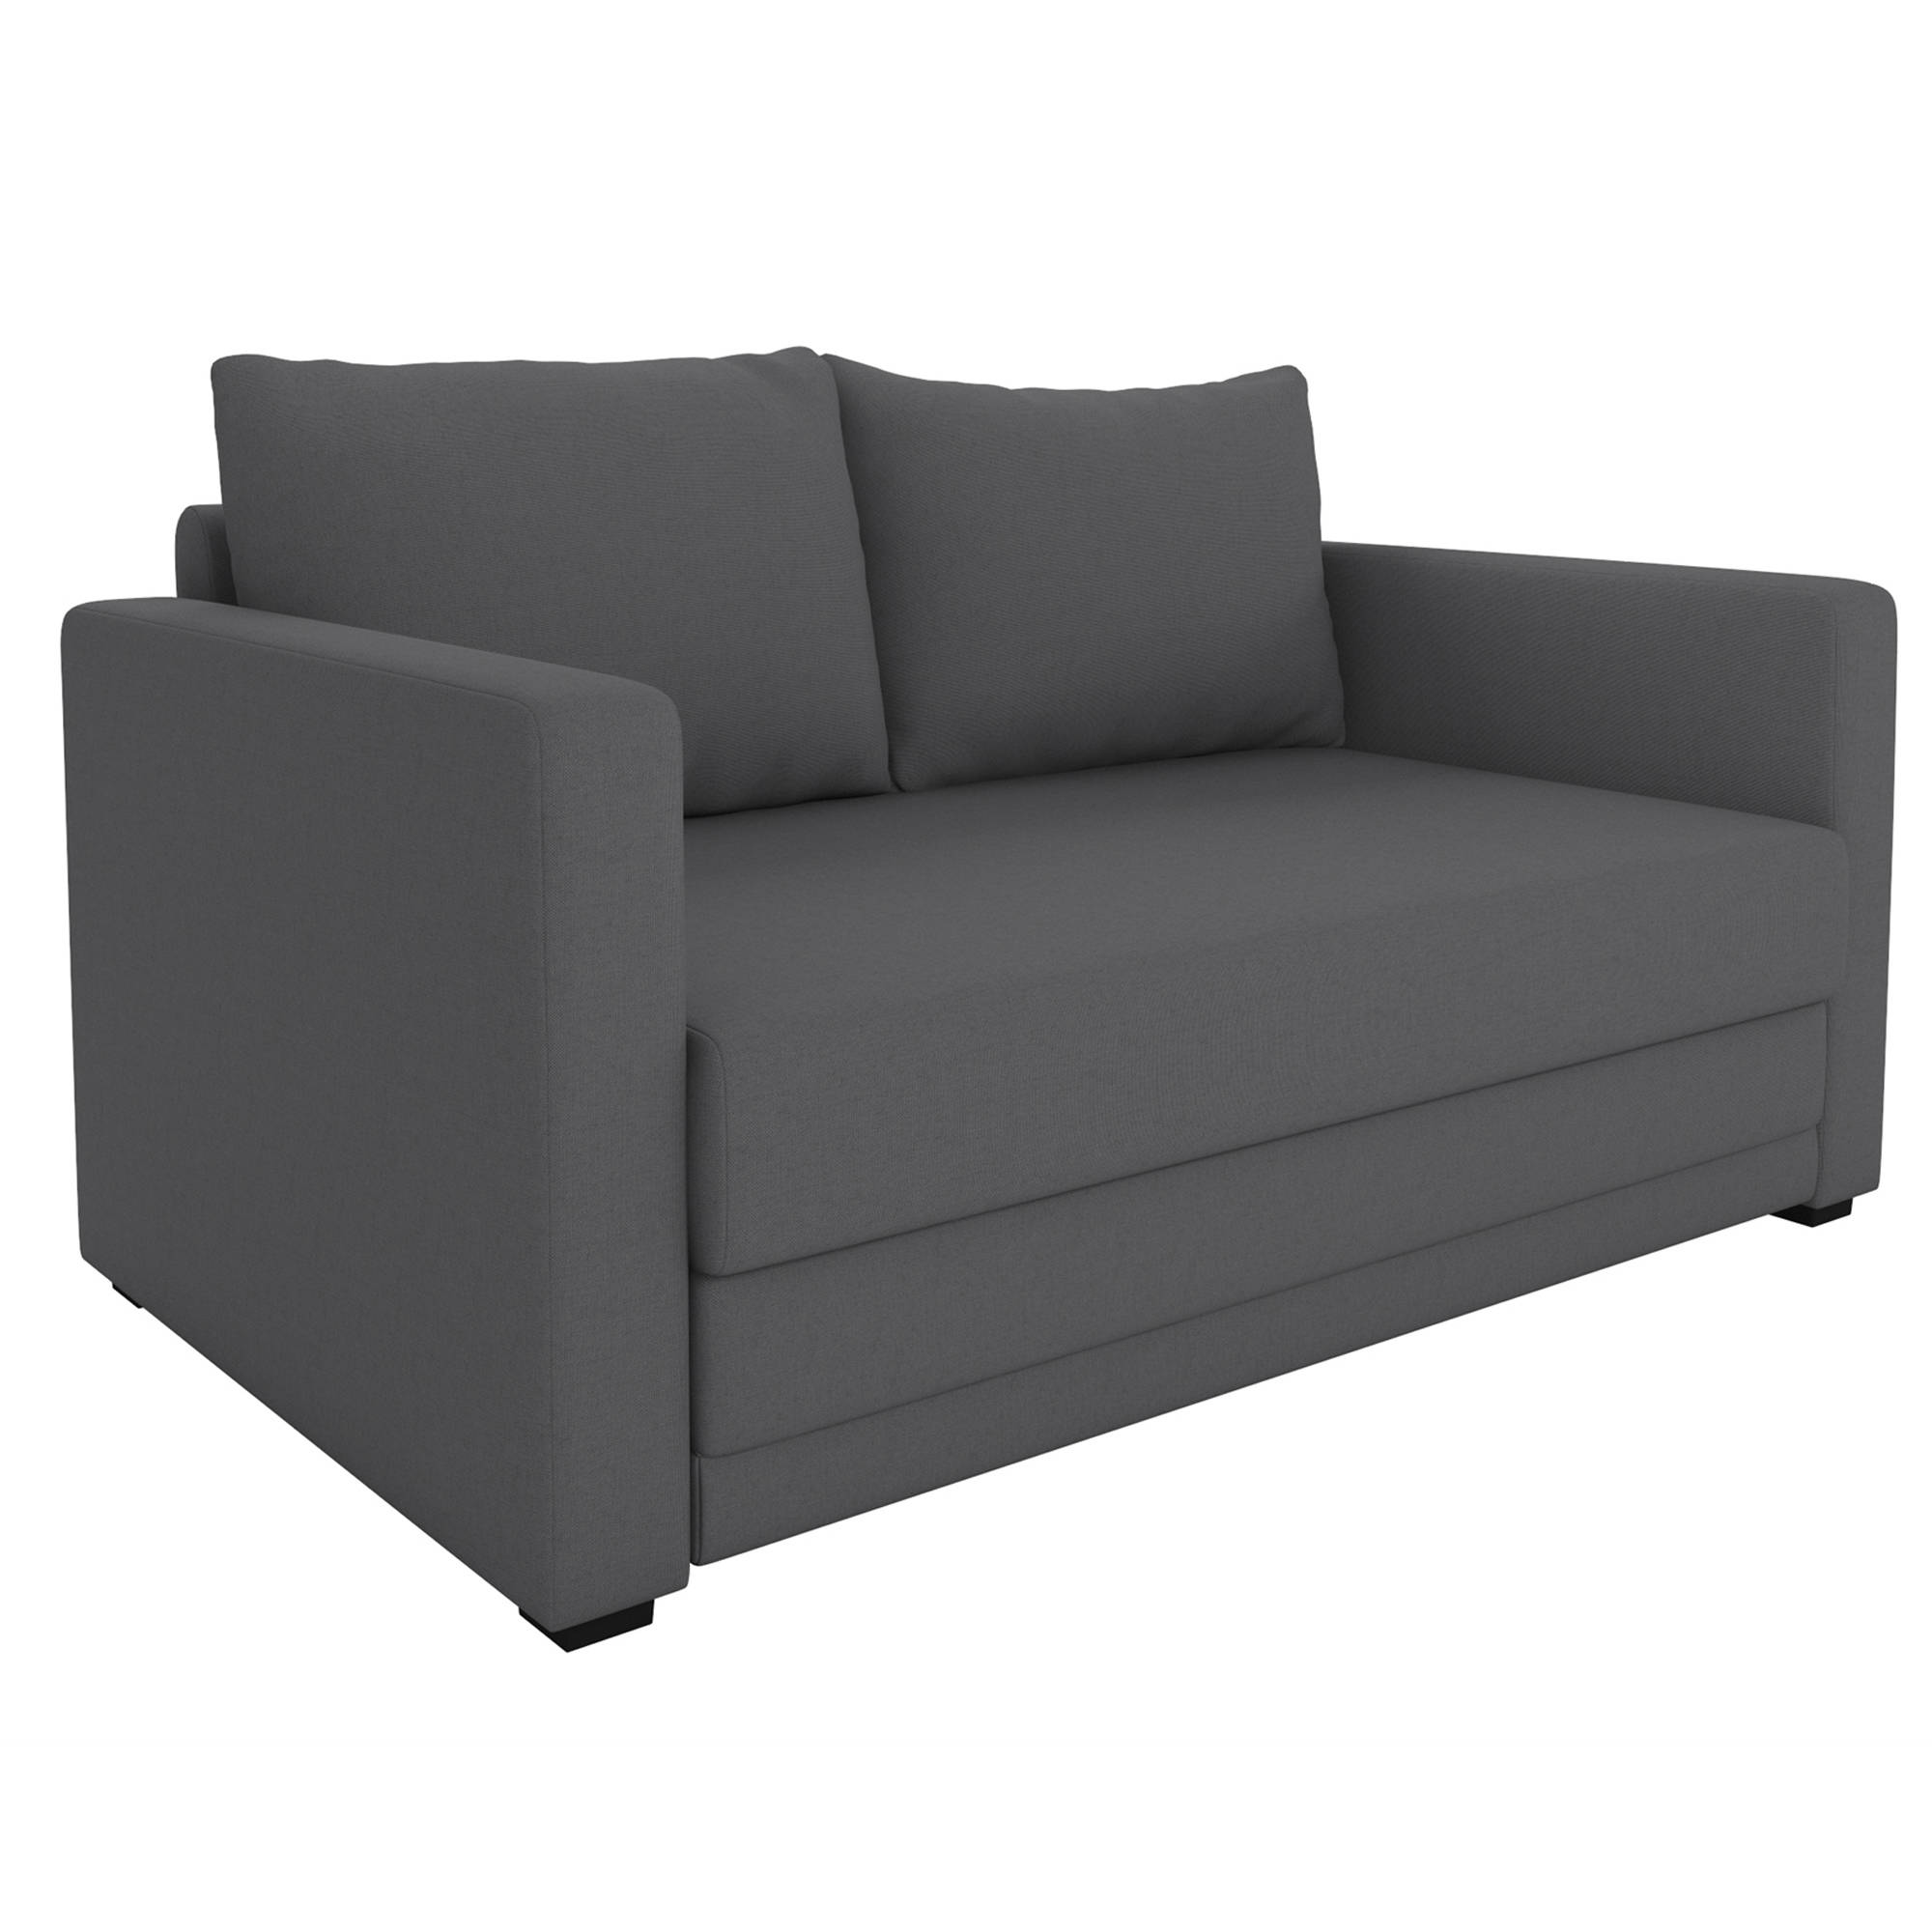 flip sofa cheapest online india bed mainstays sleeper chair